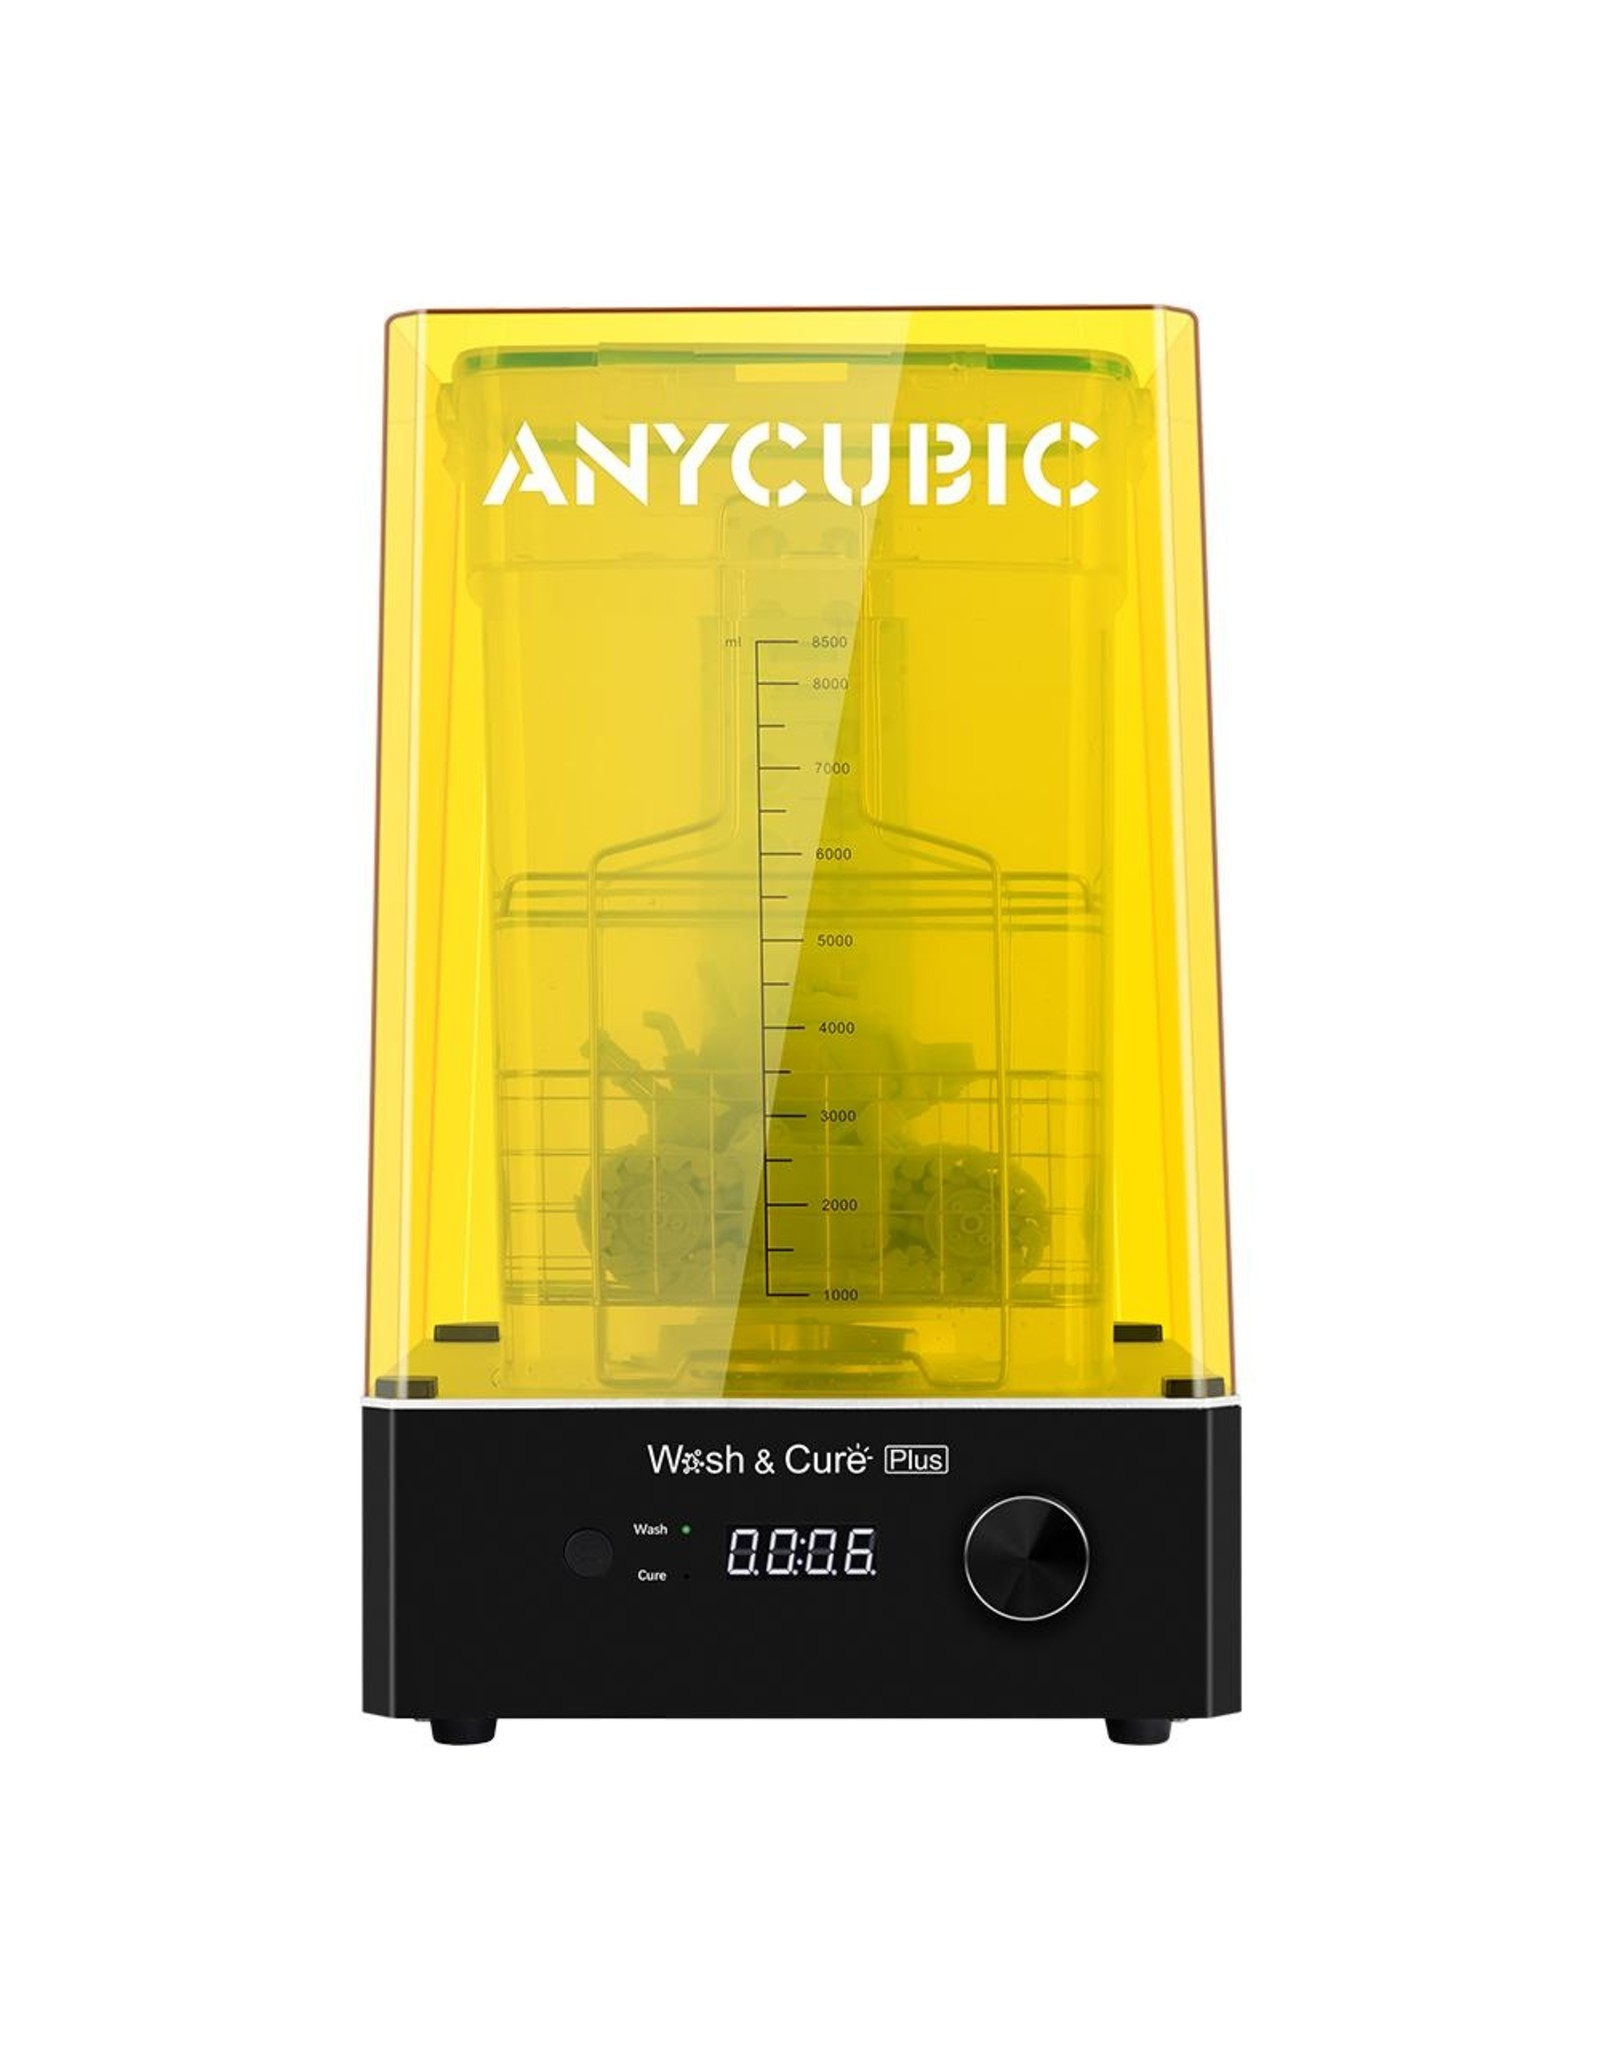 Anycubic Anycubic Wash & Cure Plus Machine